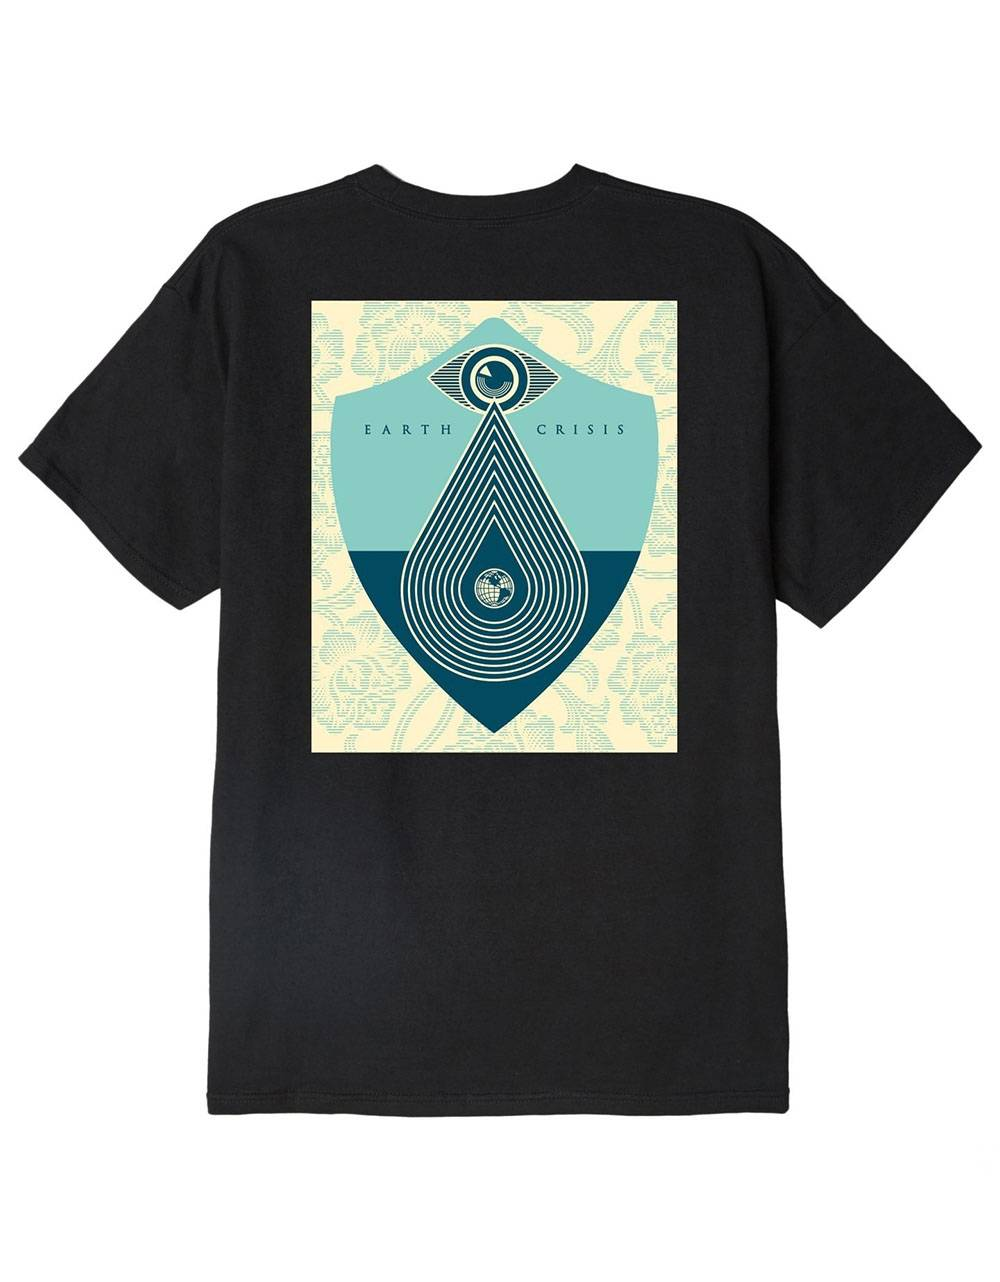 Obey Earth crisis classic t-shirt - black obey T-shirt 36,89€